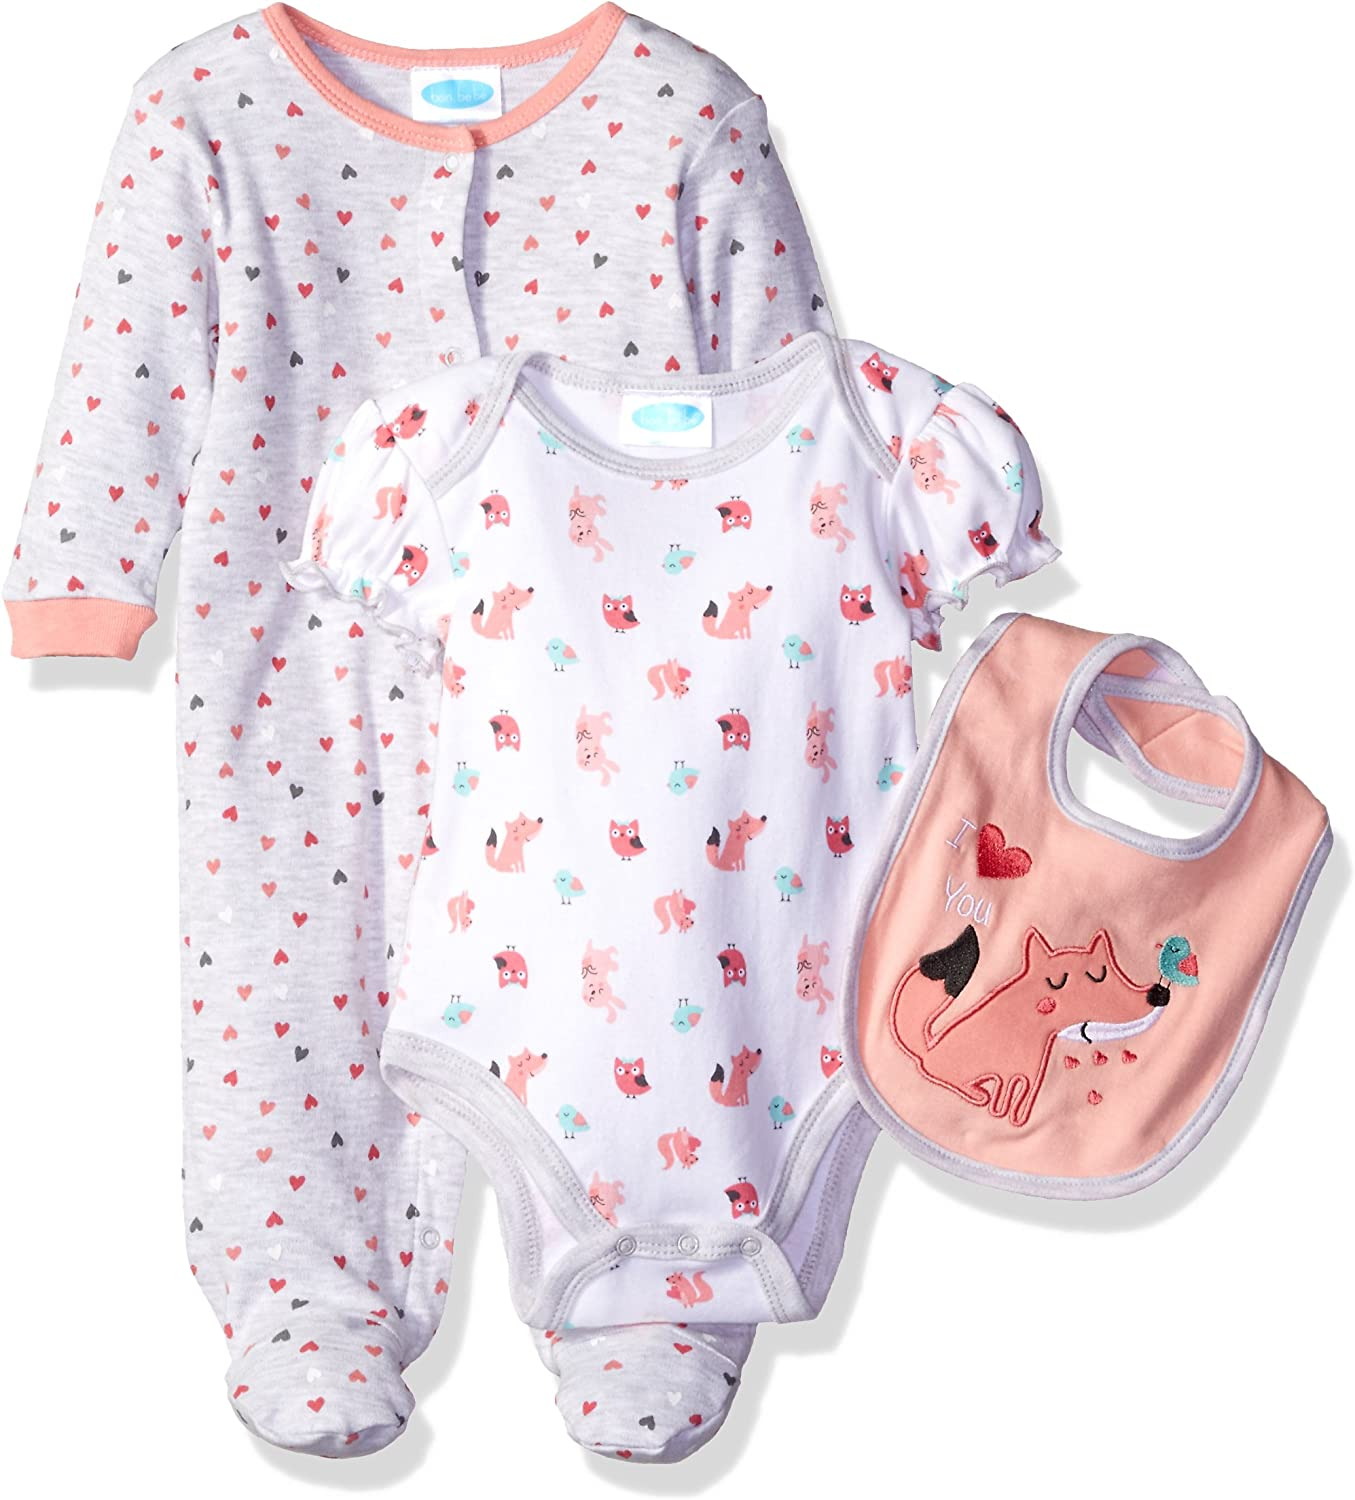 BON BEBE Baby Girls 3 Piece Take Me Home Set with Coverall Lap Shoulder Bodysuit and Bib